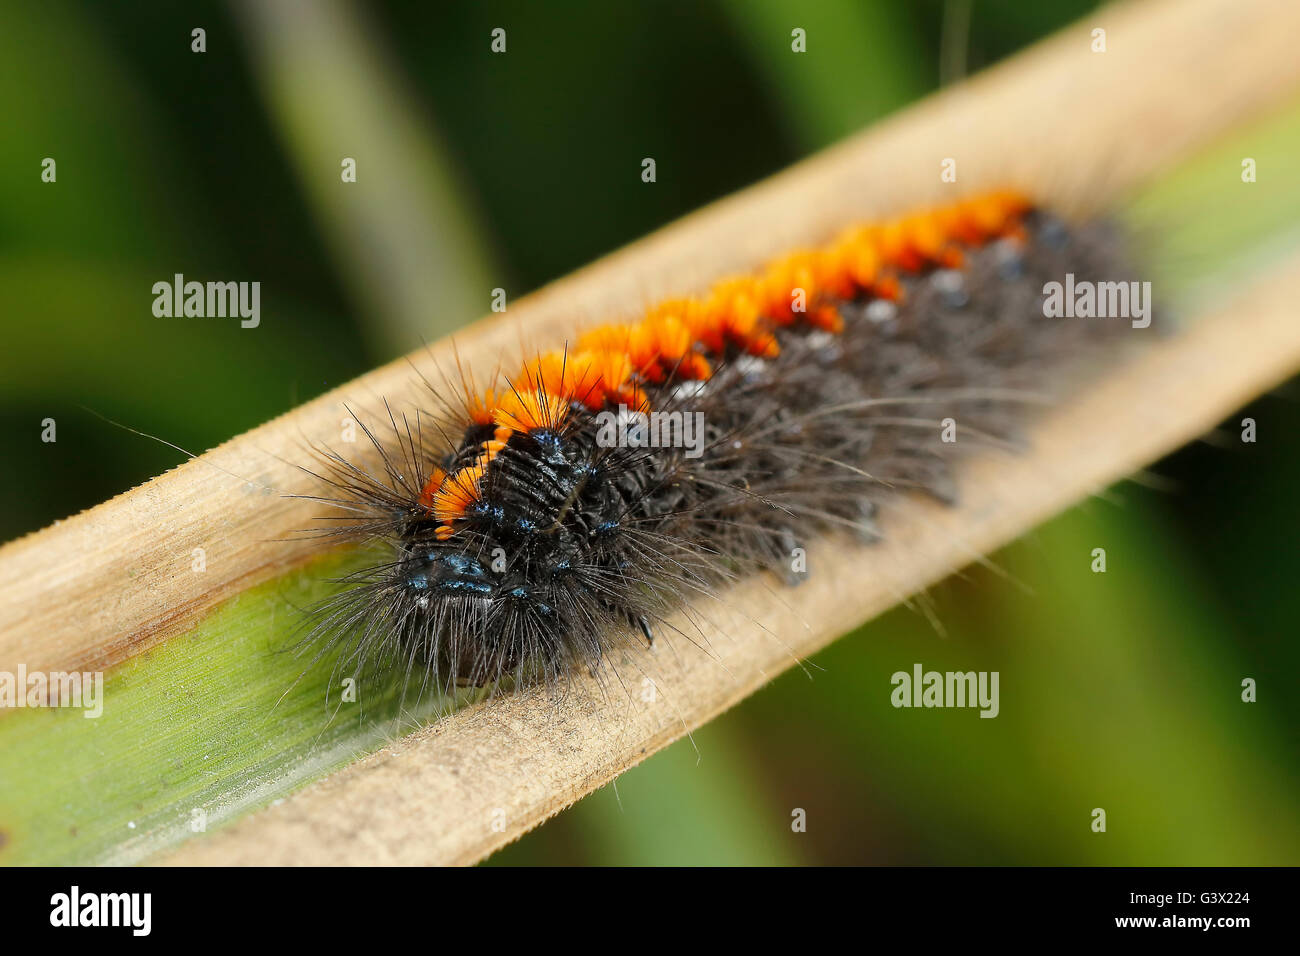 A spiny caterpillar resting at grass leaf - Stock Image